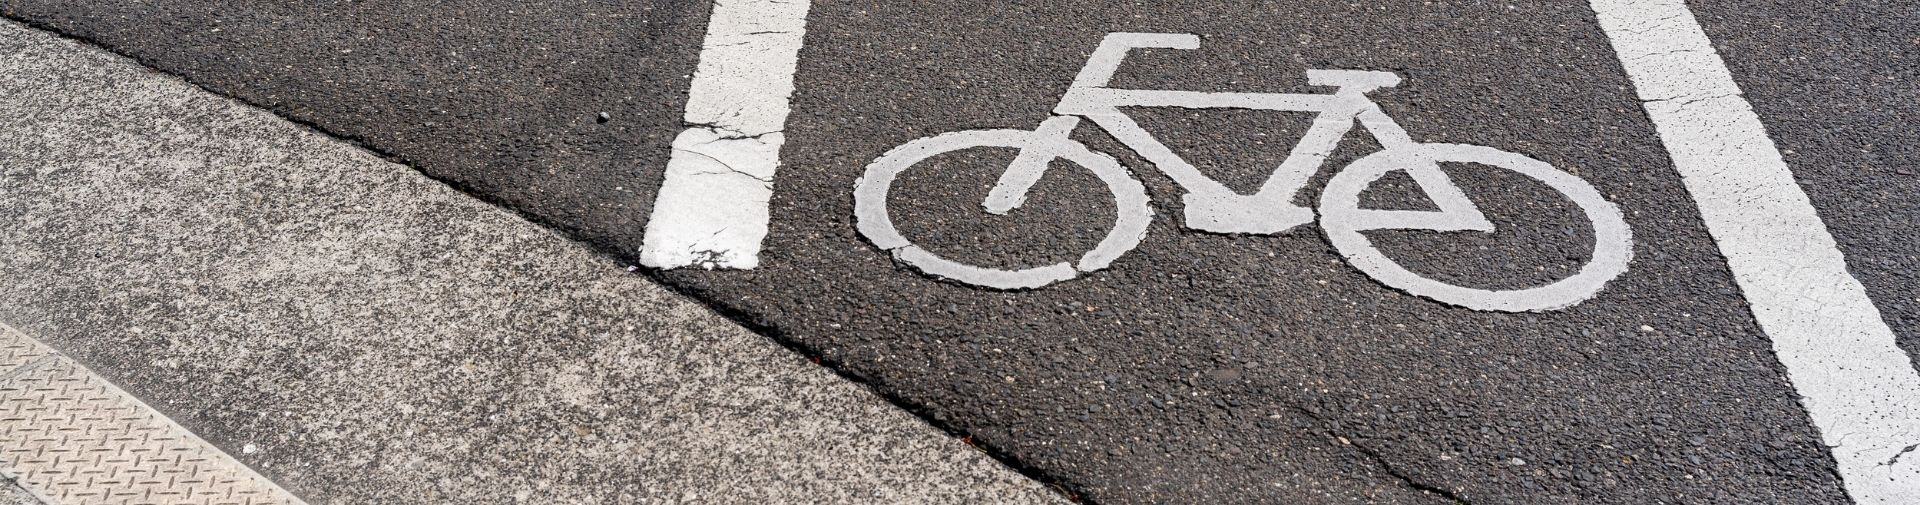 Cycle Accident Compensation Claim Solicitors